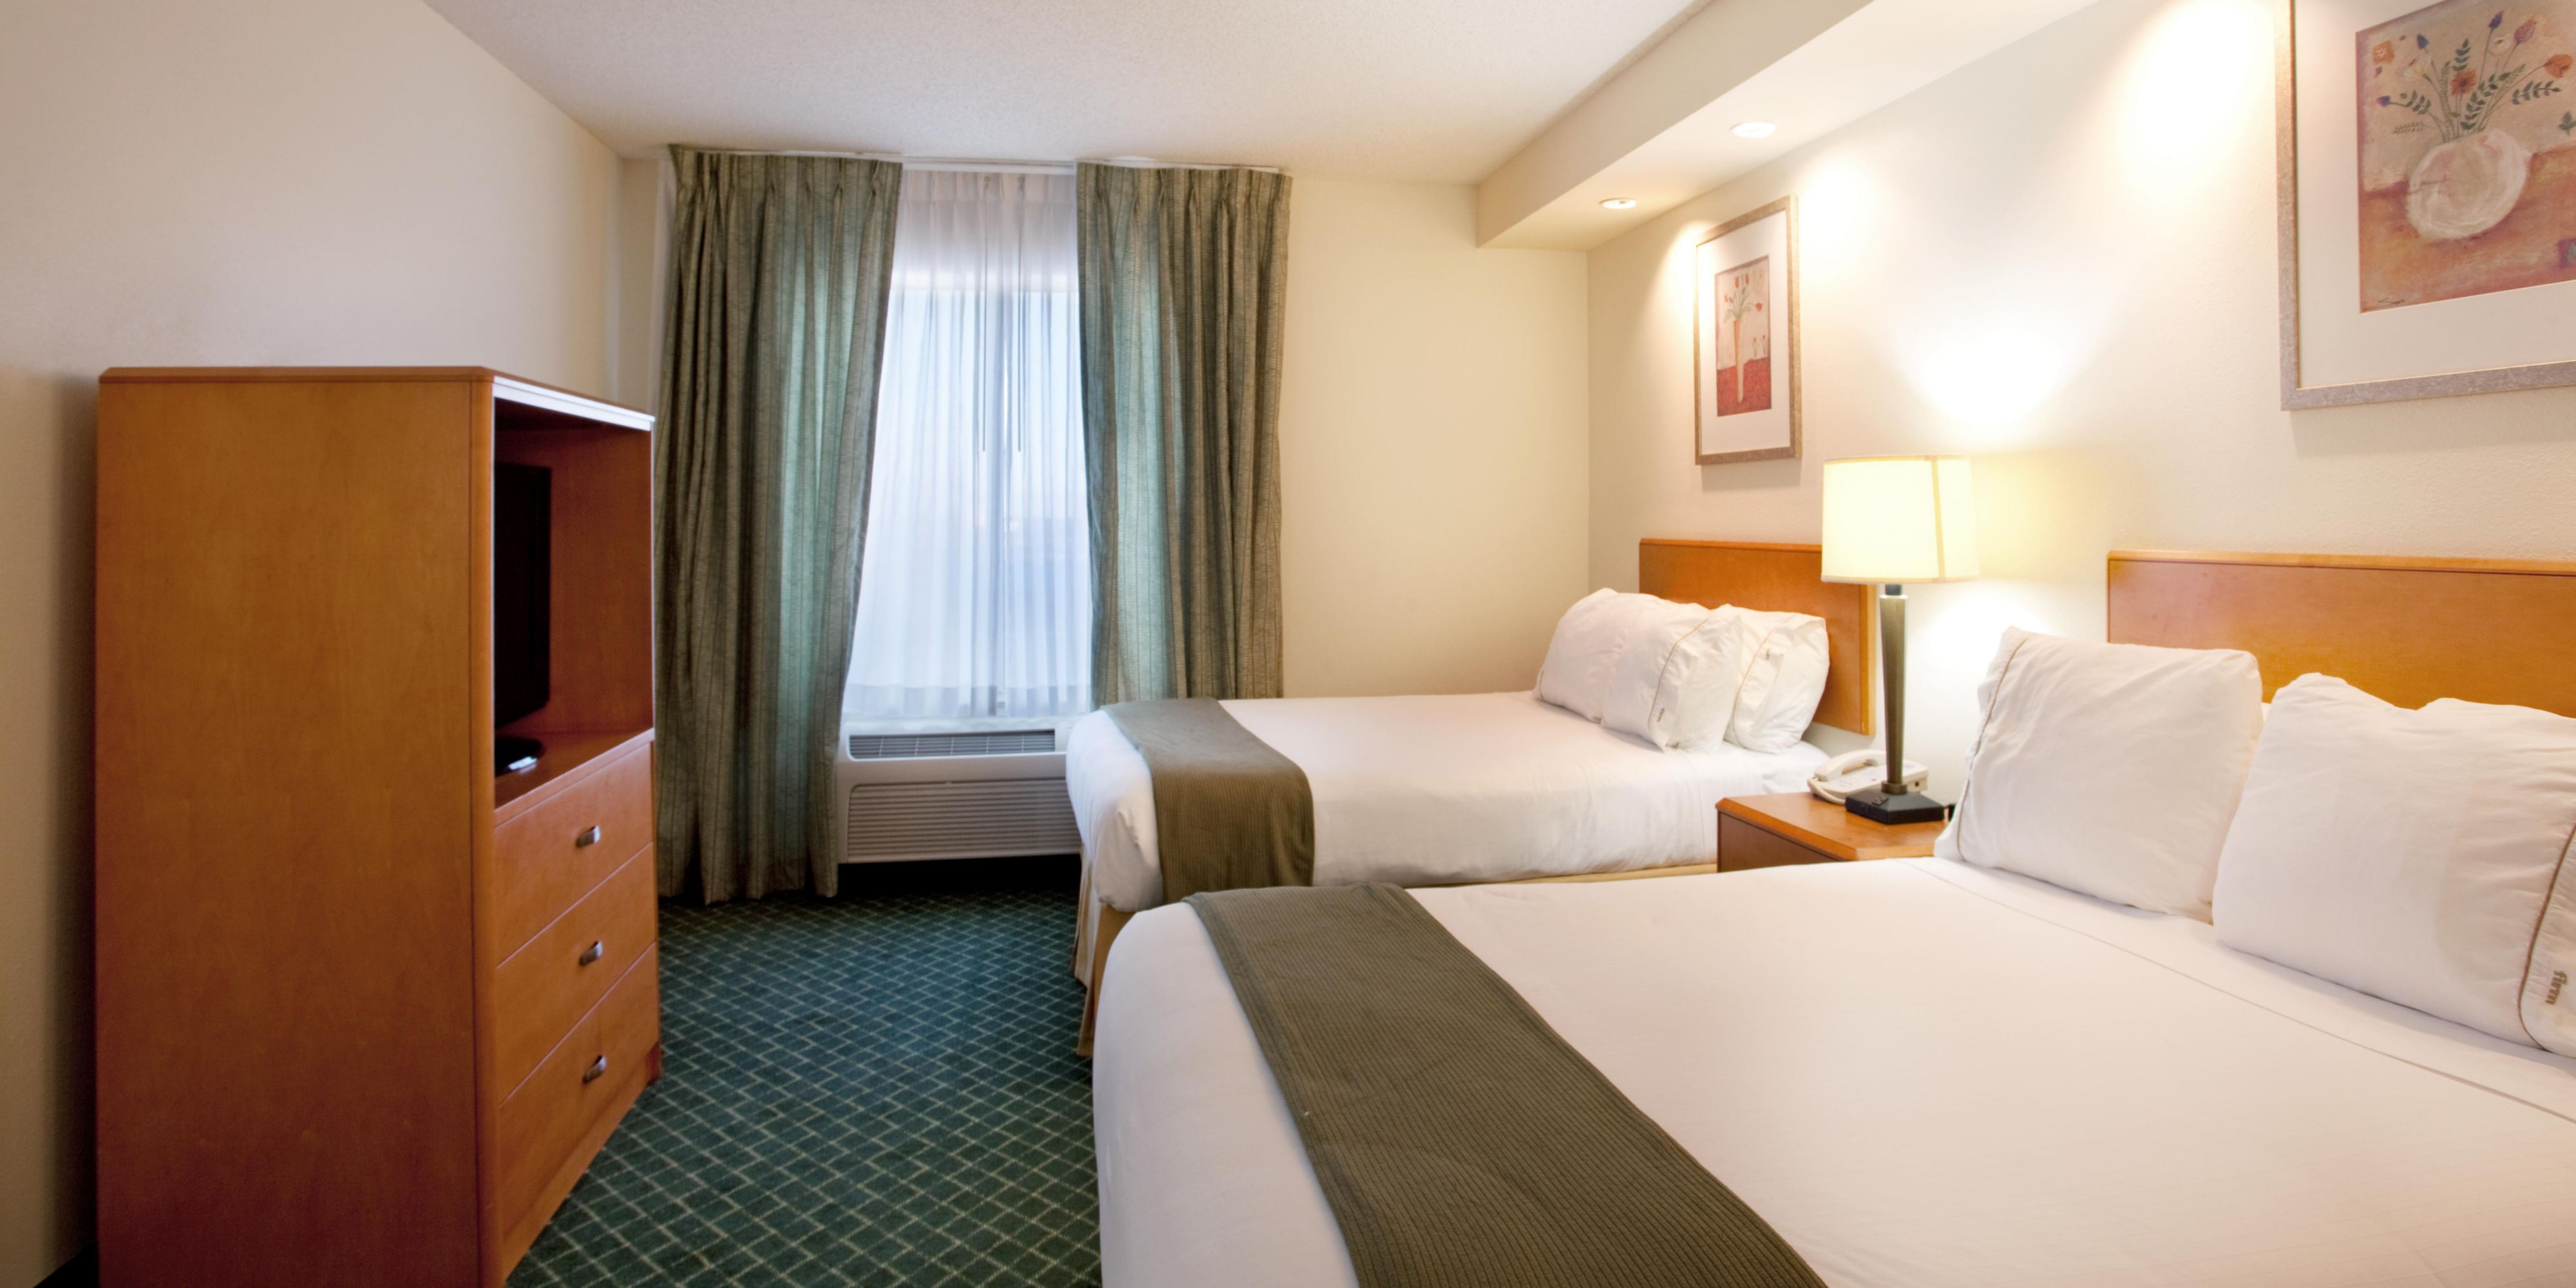 Holiday Inn Express New Orleans 4187790860 2x1